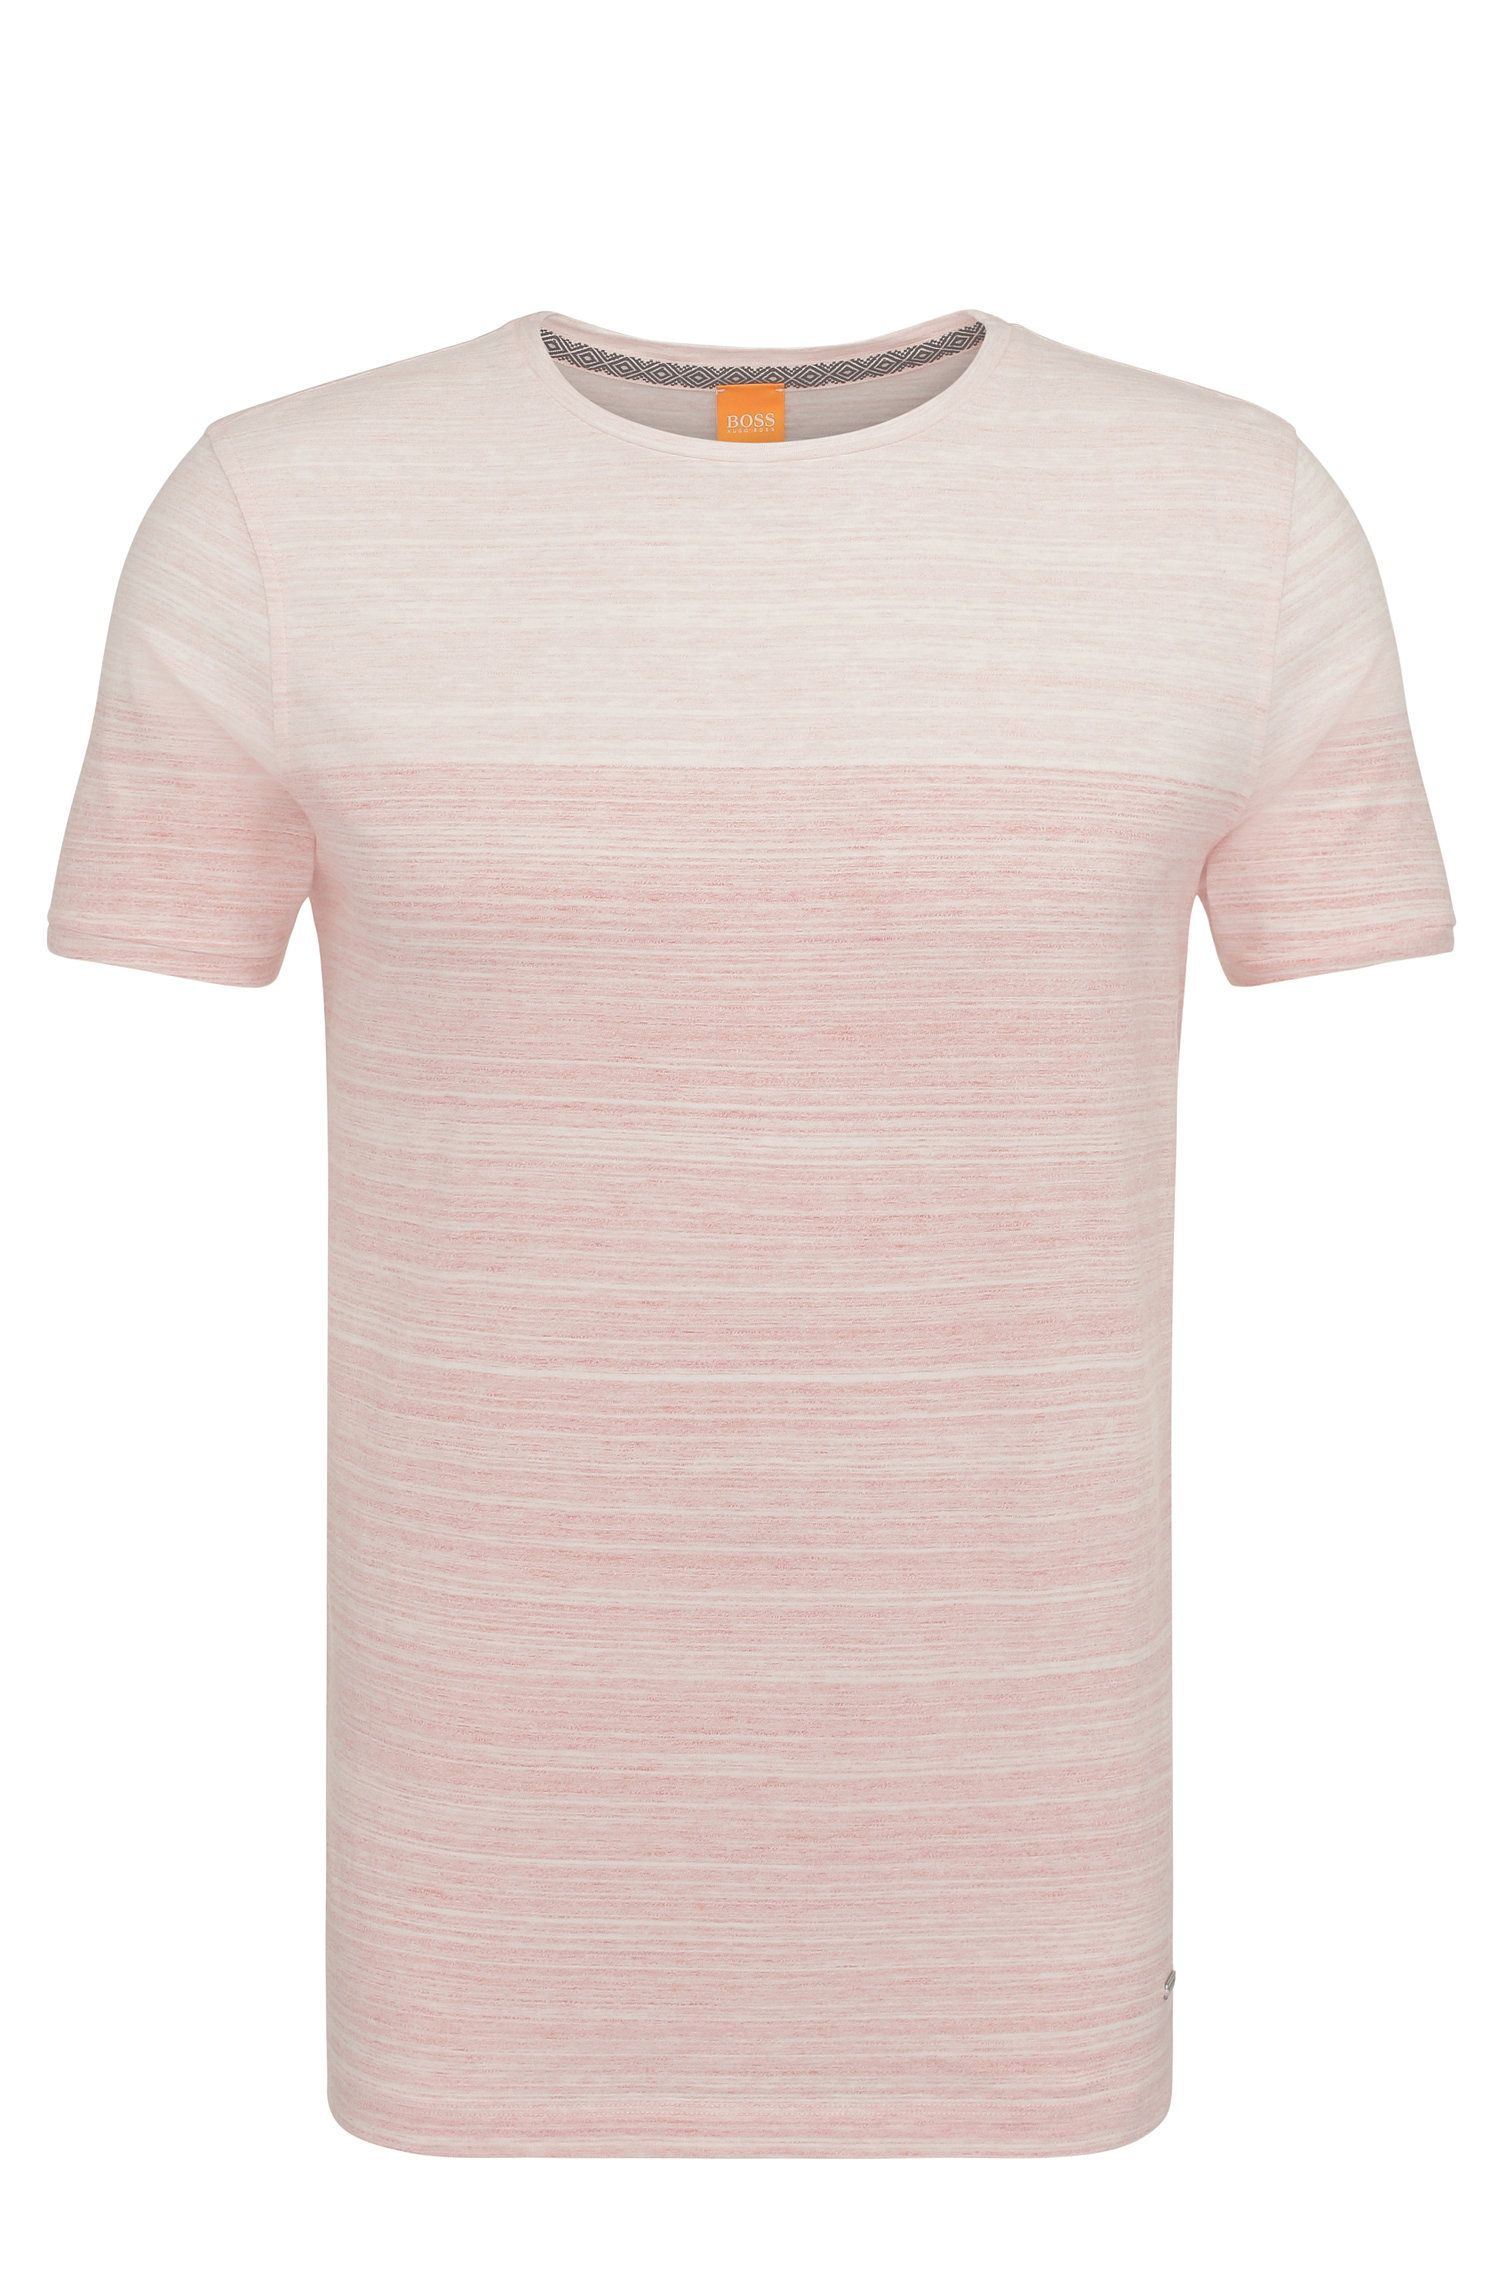 'Trumble' | Cotton Ombre Striped Tee Shirt